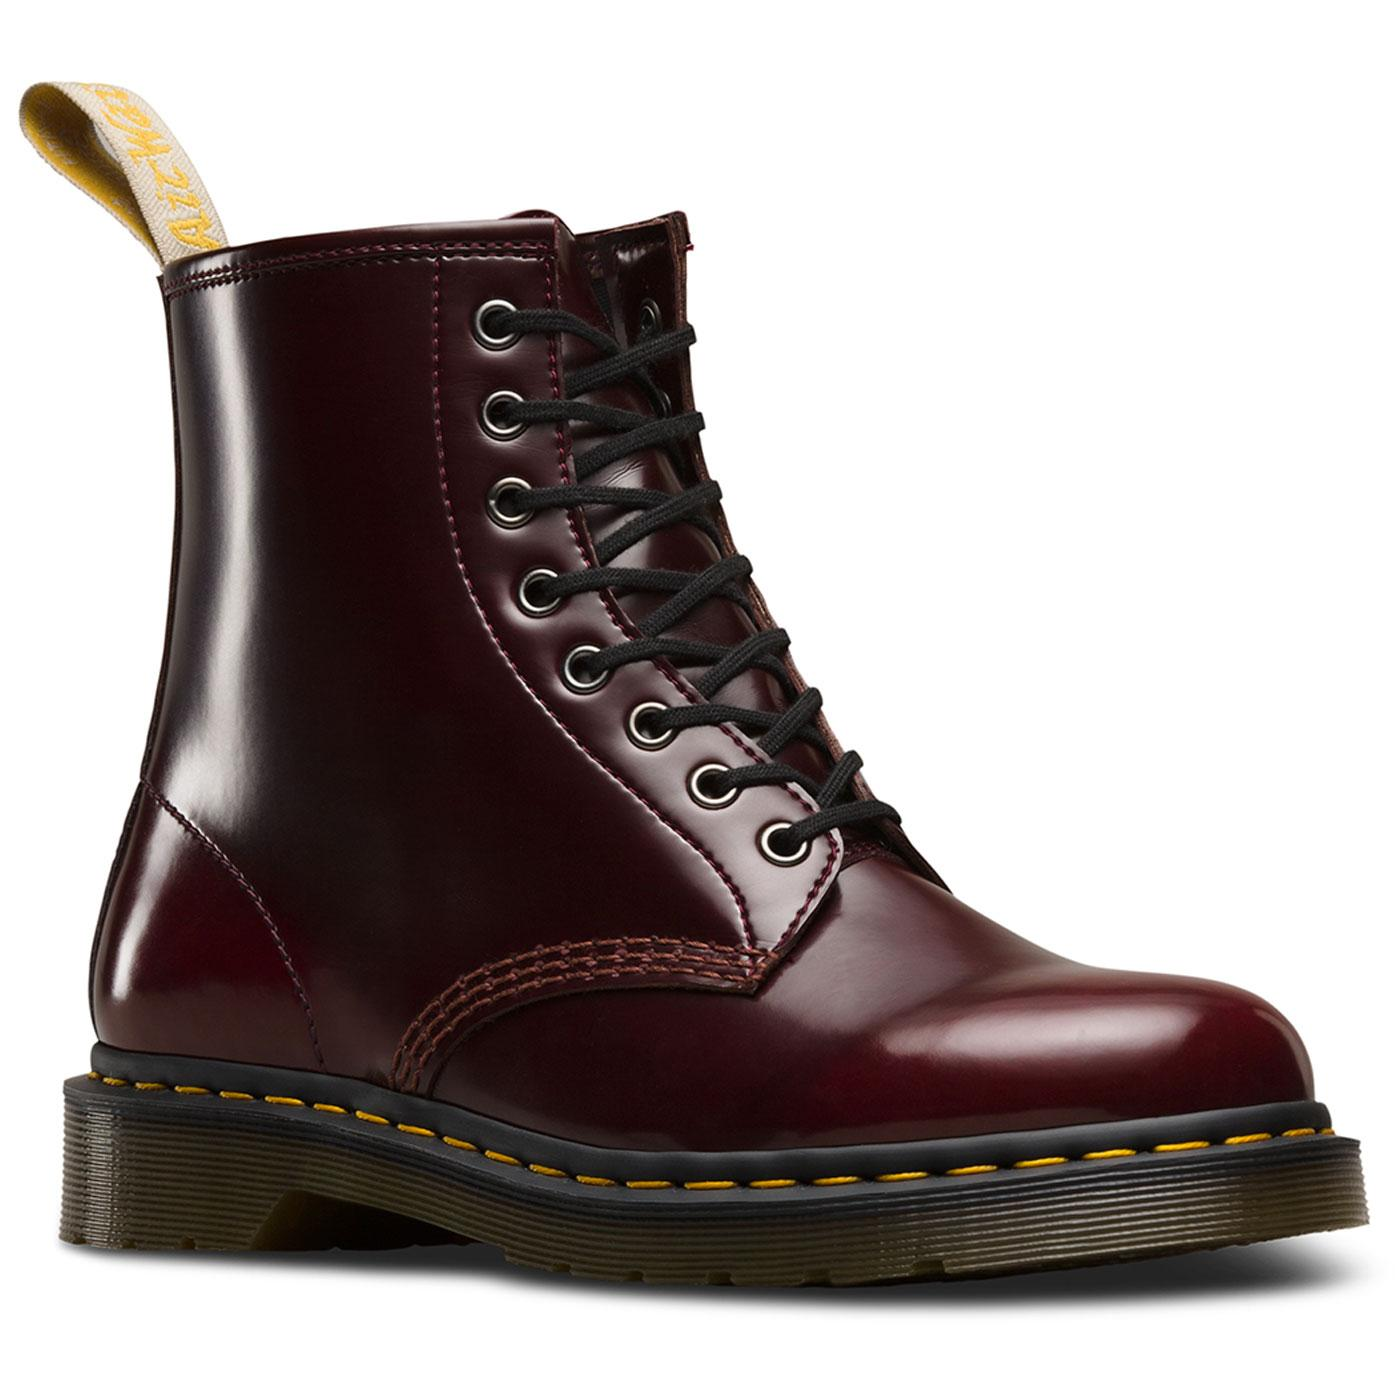 Vegan 1460 Cambridge Brush DR MARTENS Cherry Boot